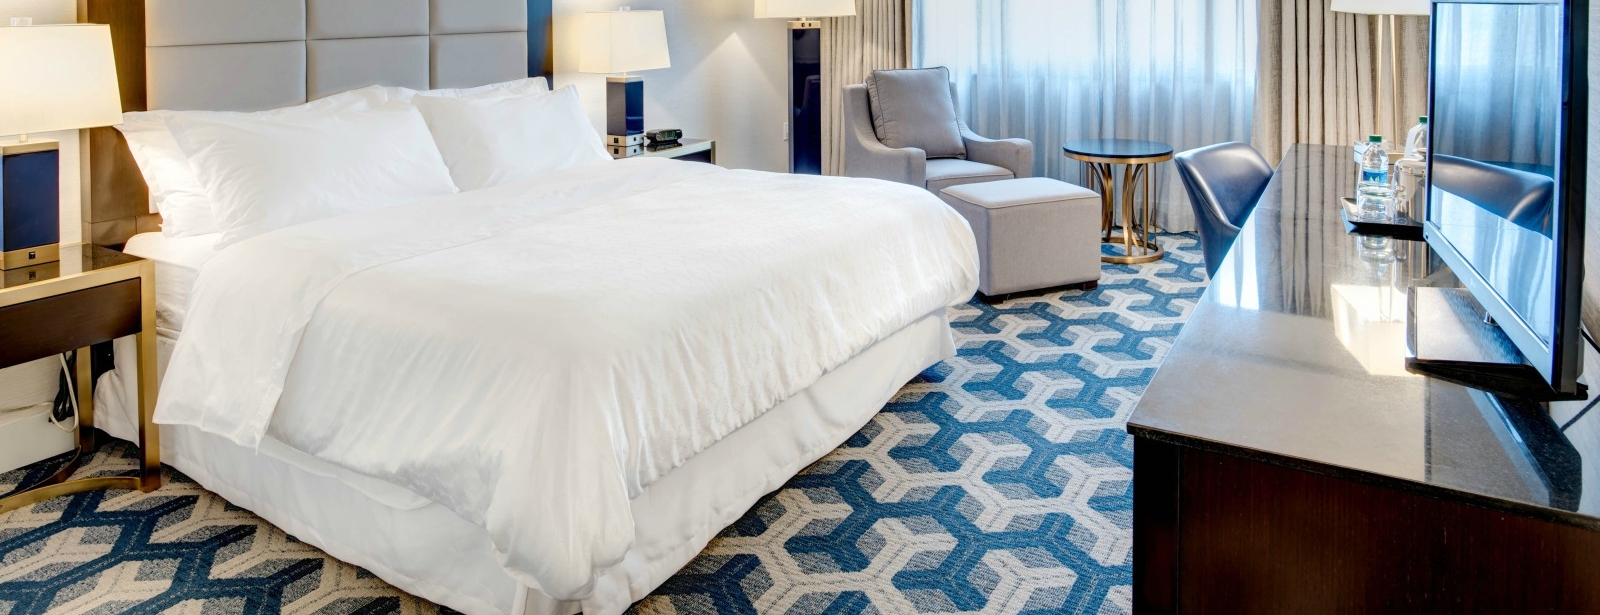 Traditional Guest Room - Sheraton Eatontown Hotel